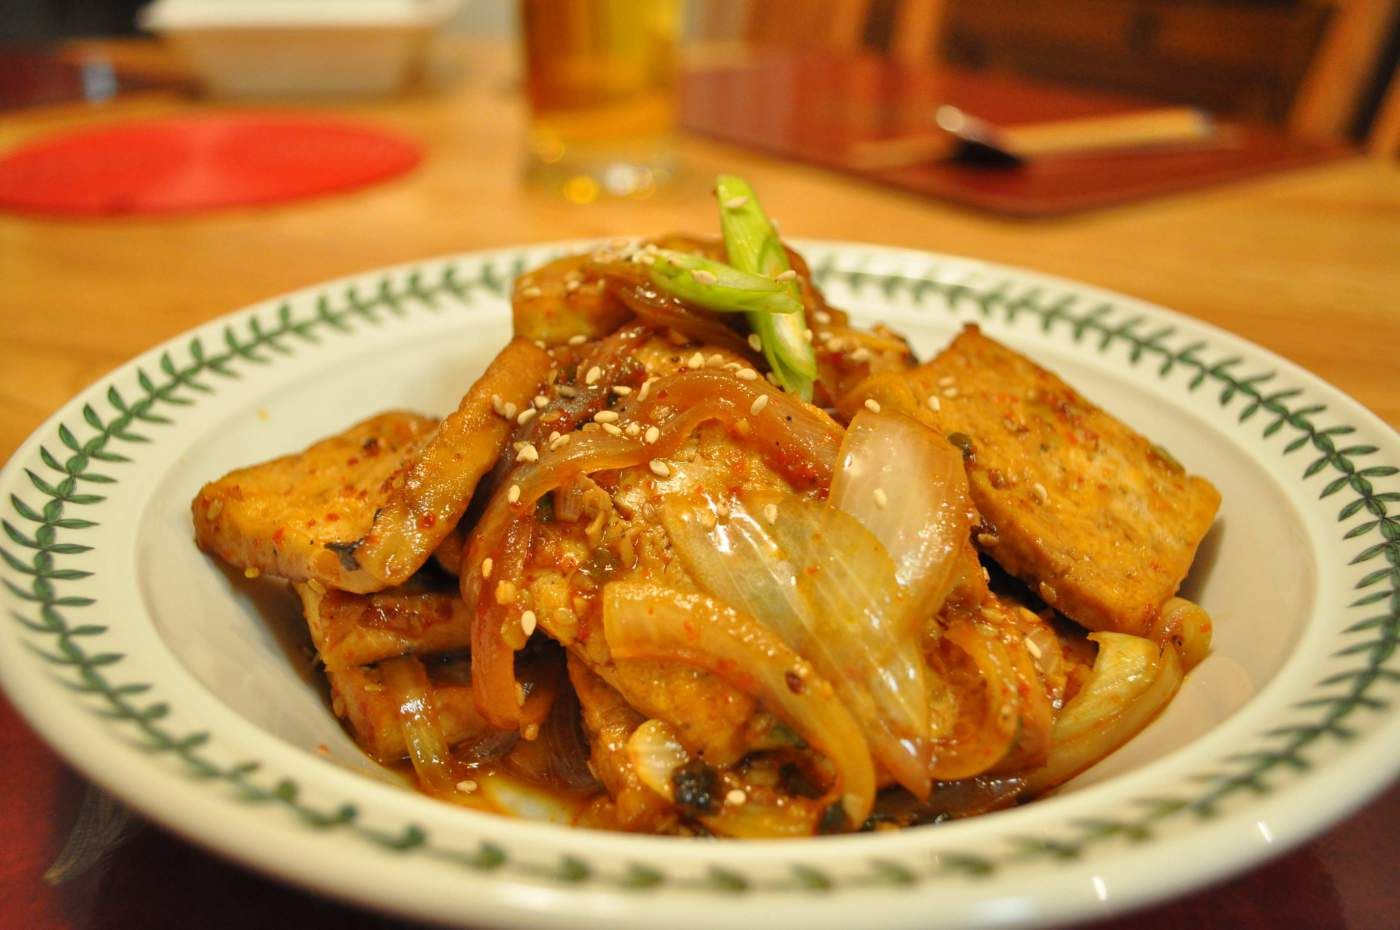 Tofu jorim marinated braised in soy mirin sauce side dish recipes forumfinder Image collections